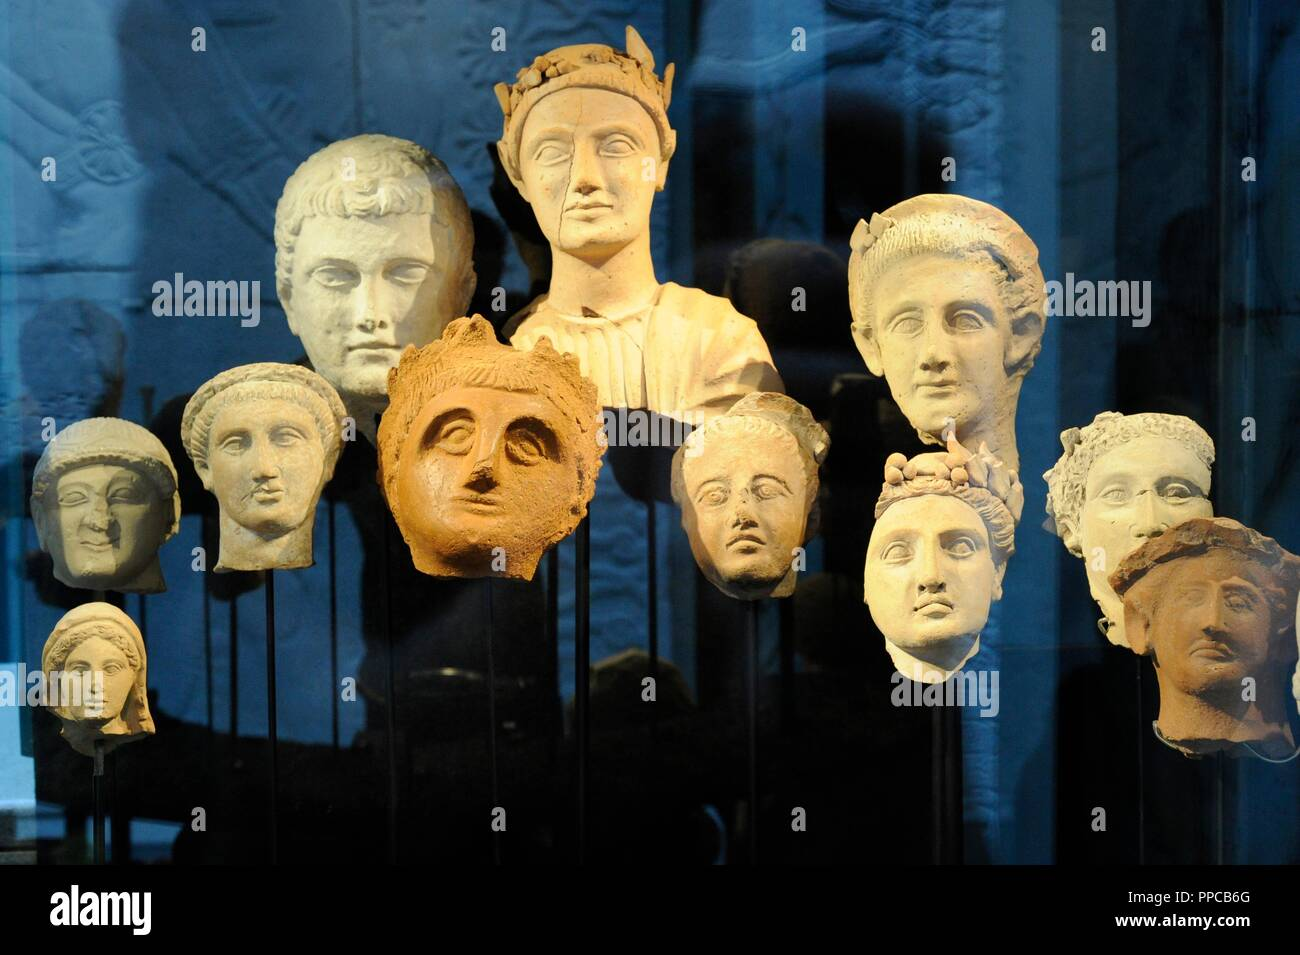 Heads of men and women. Terracotta and limestone. 7th century BC- 1st century AD. From Marion and Mersinaki, Cyprus. Museum of Mediterranean and Near Eastern Antiquities. Stockholm. Sweden. - Stock Image